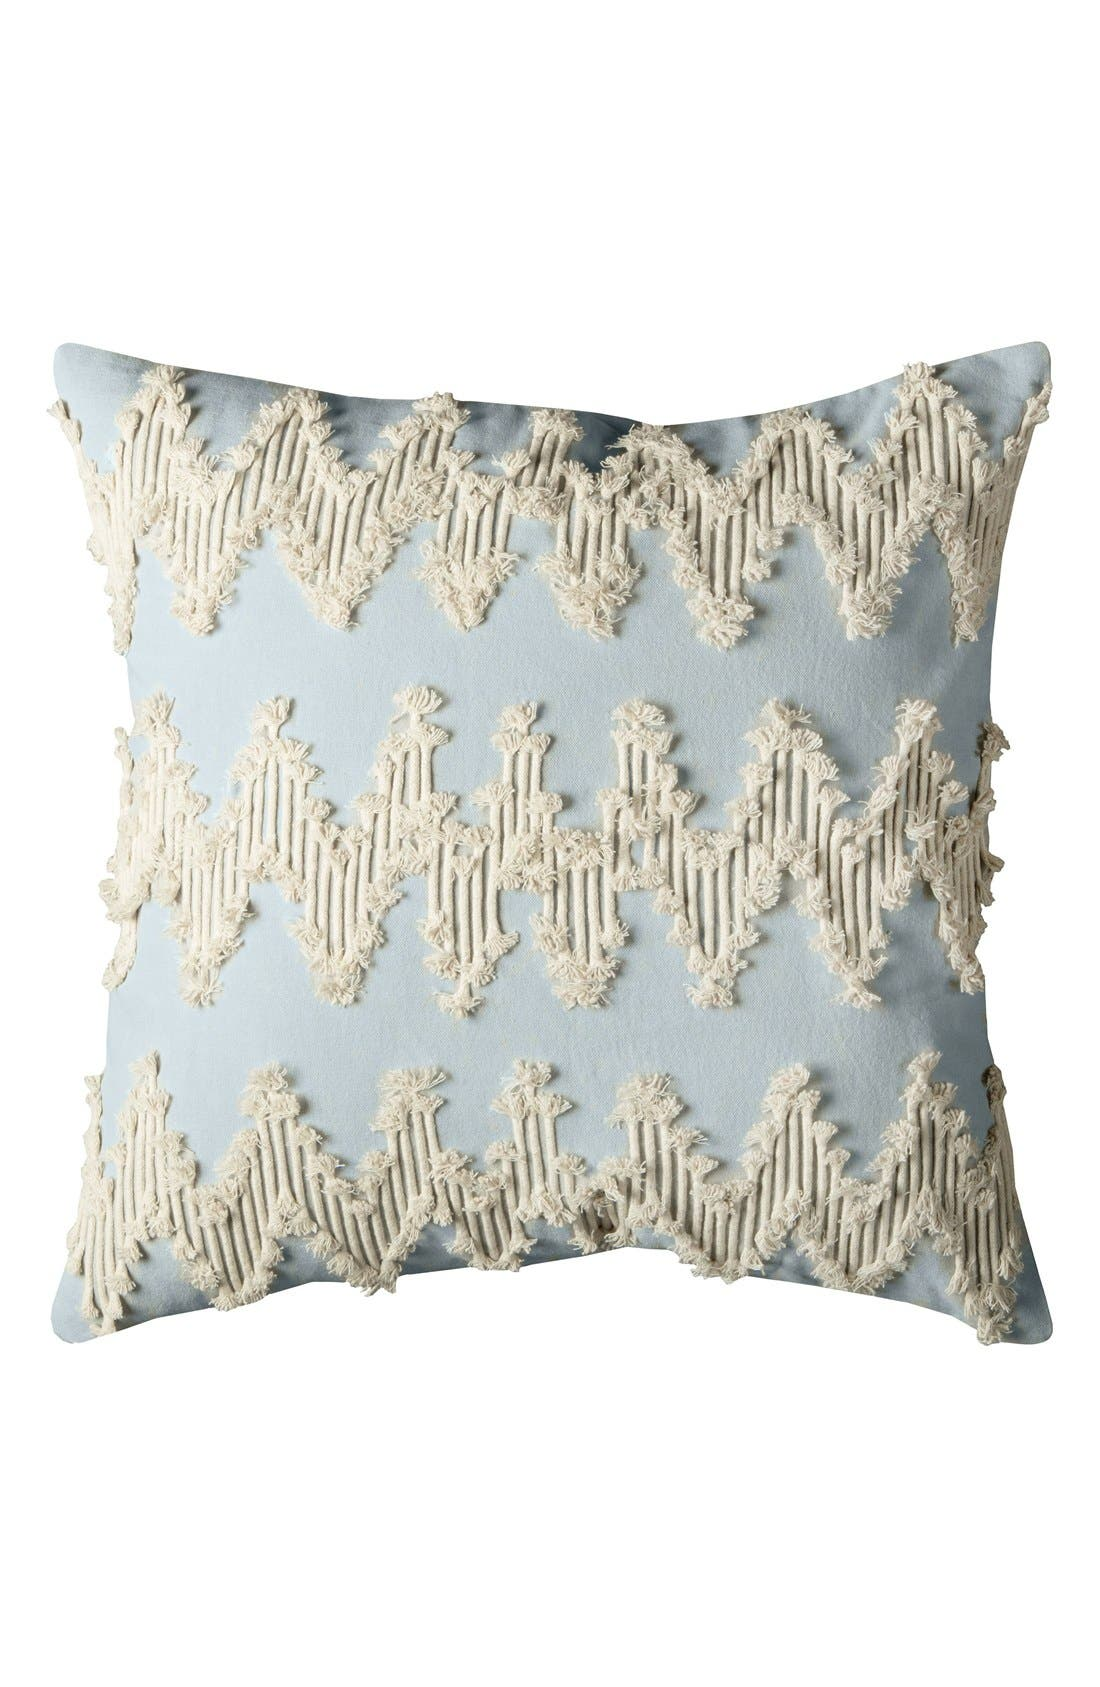 Embroidered Chevron Pillow,                             Main thumbnail 1, color,                             400